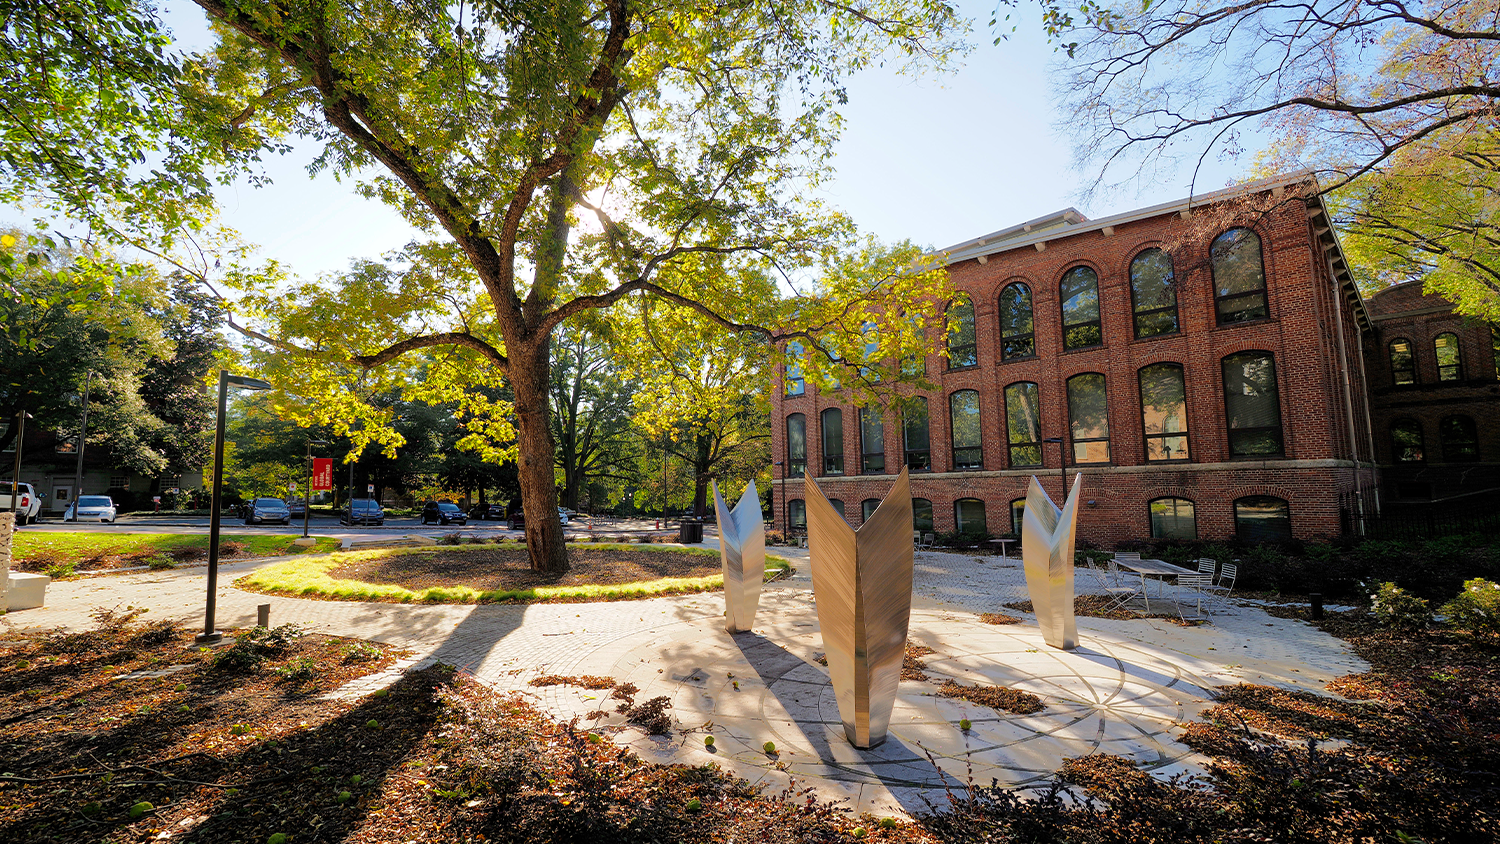 Global courtyard in the fall with leaves on the ground.